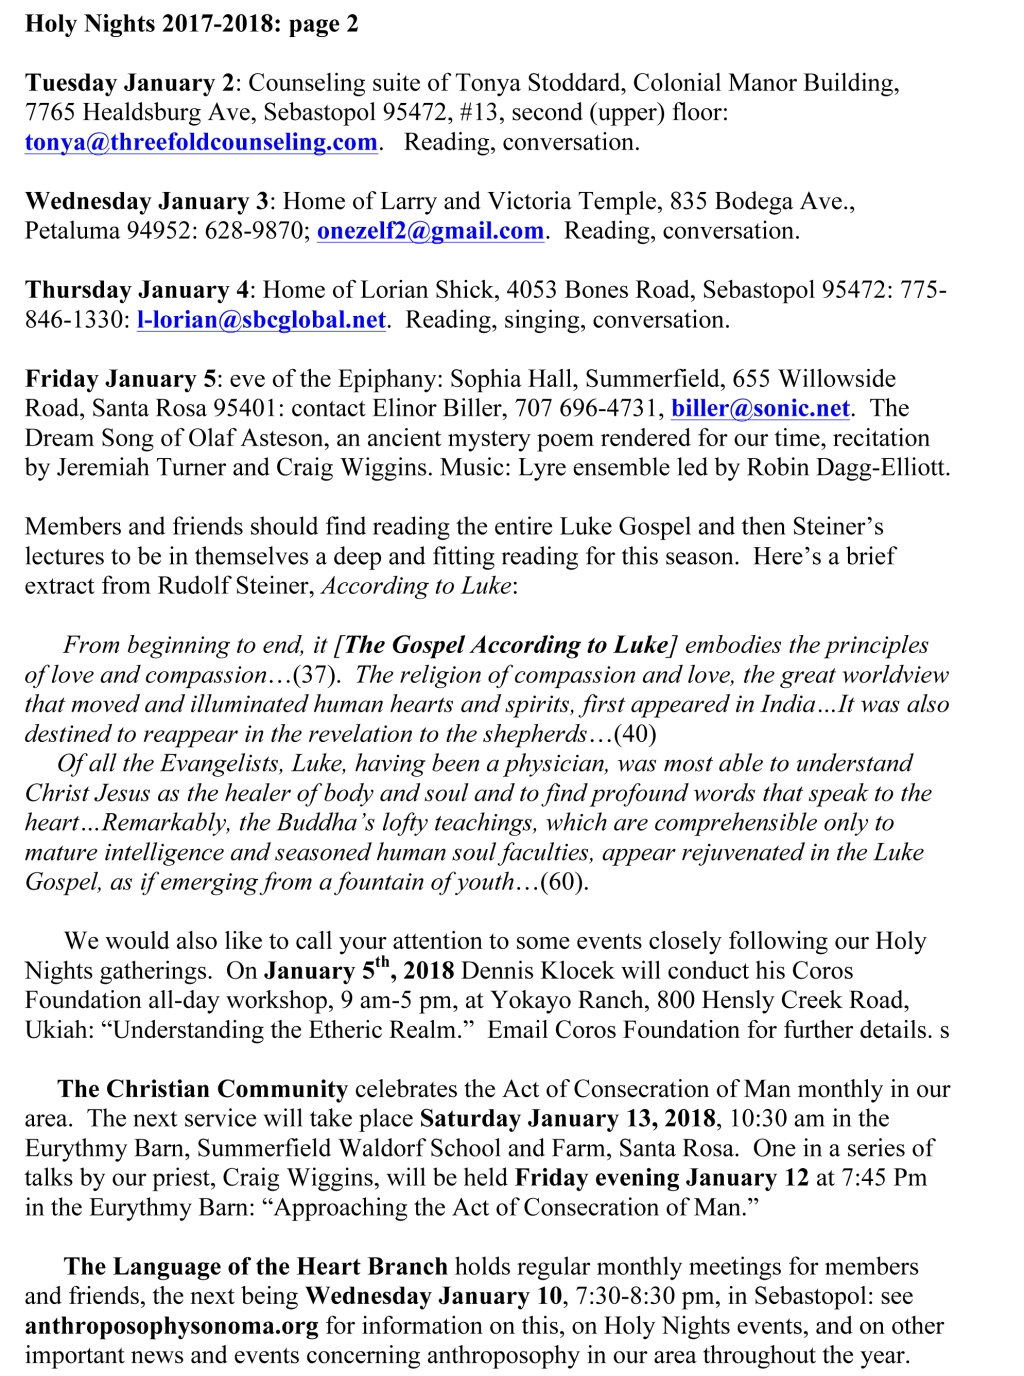 Microsoft Word - Final Draft to members and friends re Holy Nigh